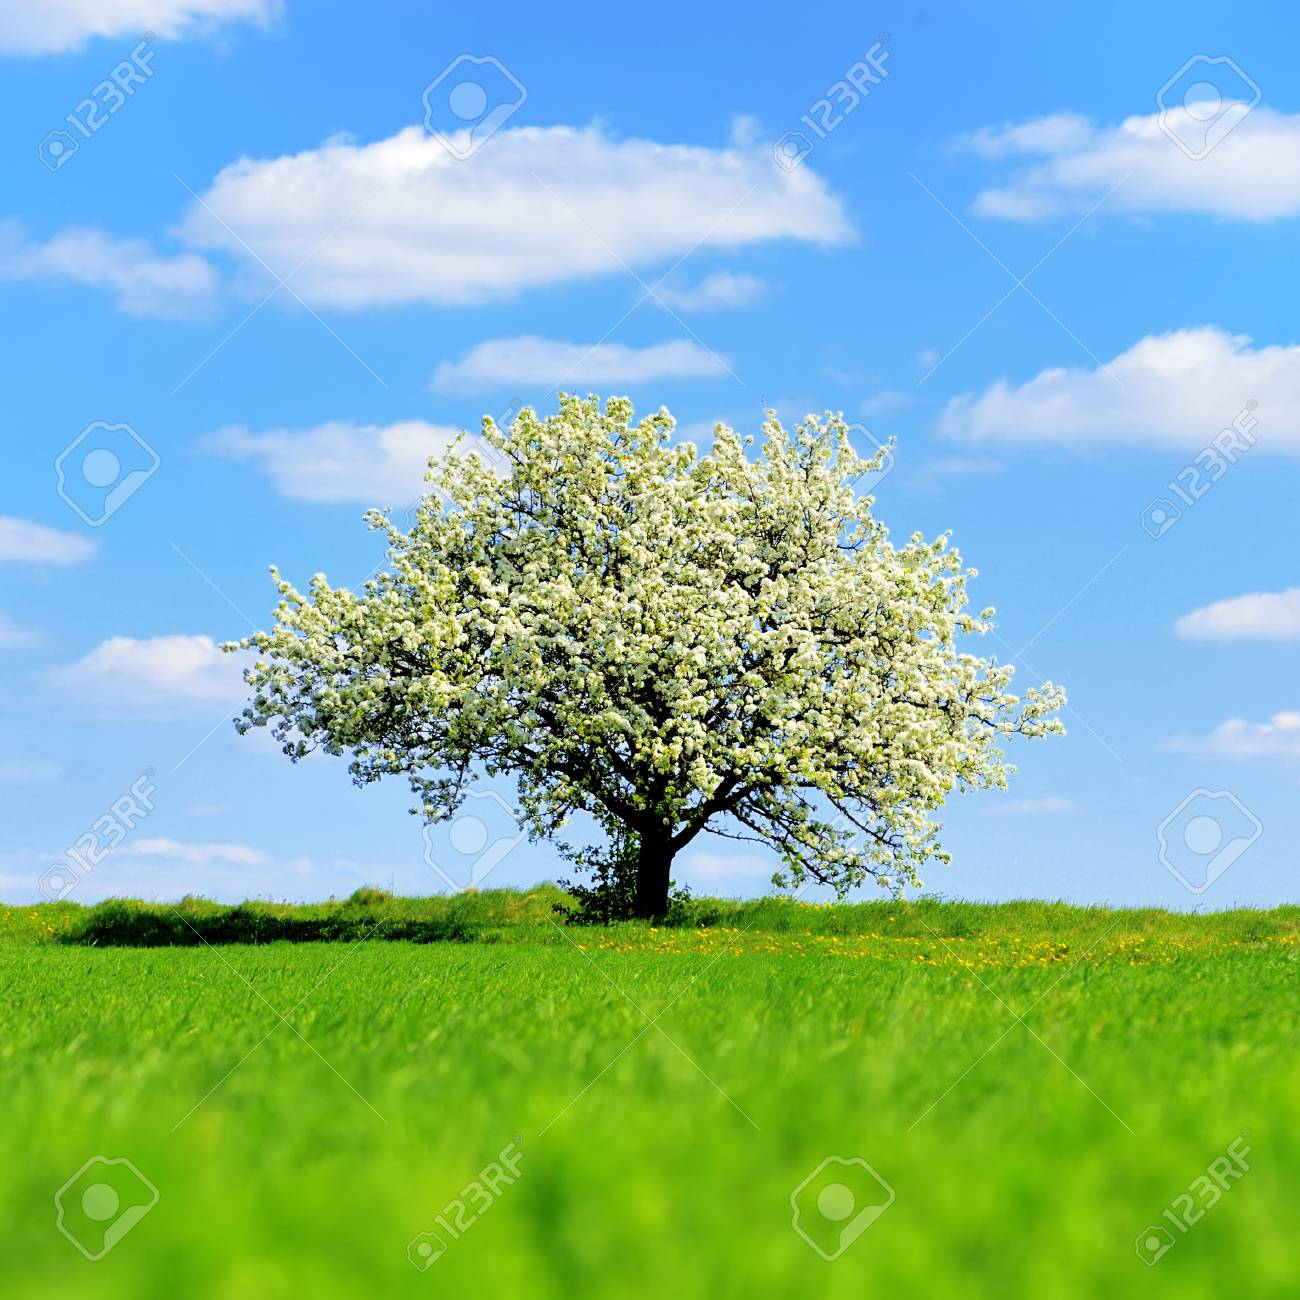 Single blossoming tree in spring on rural meadow - 98729022